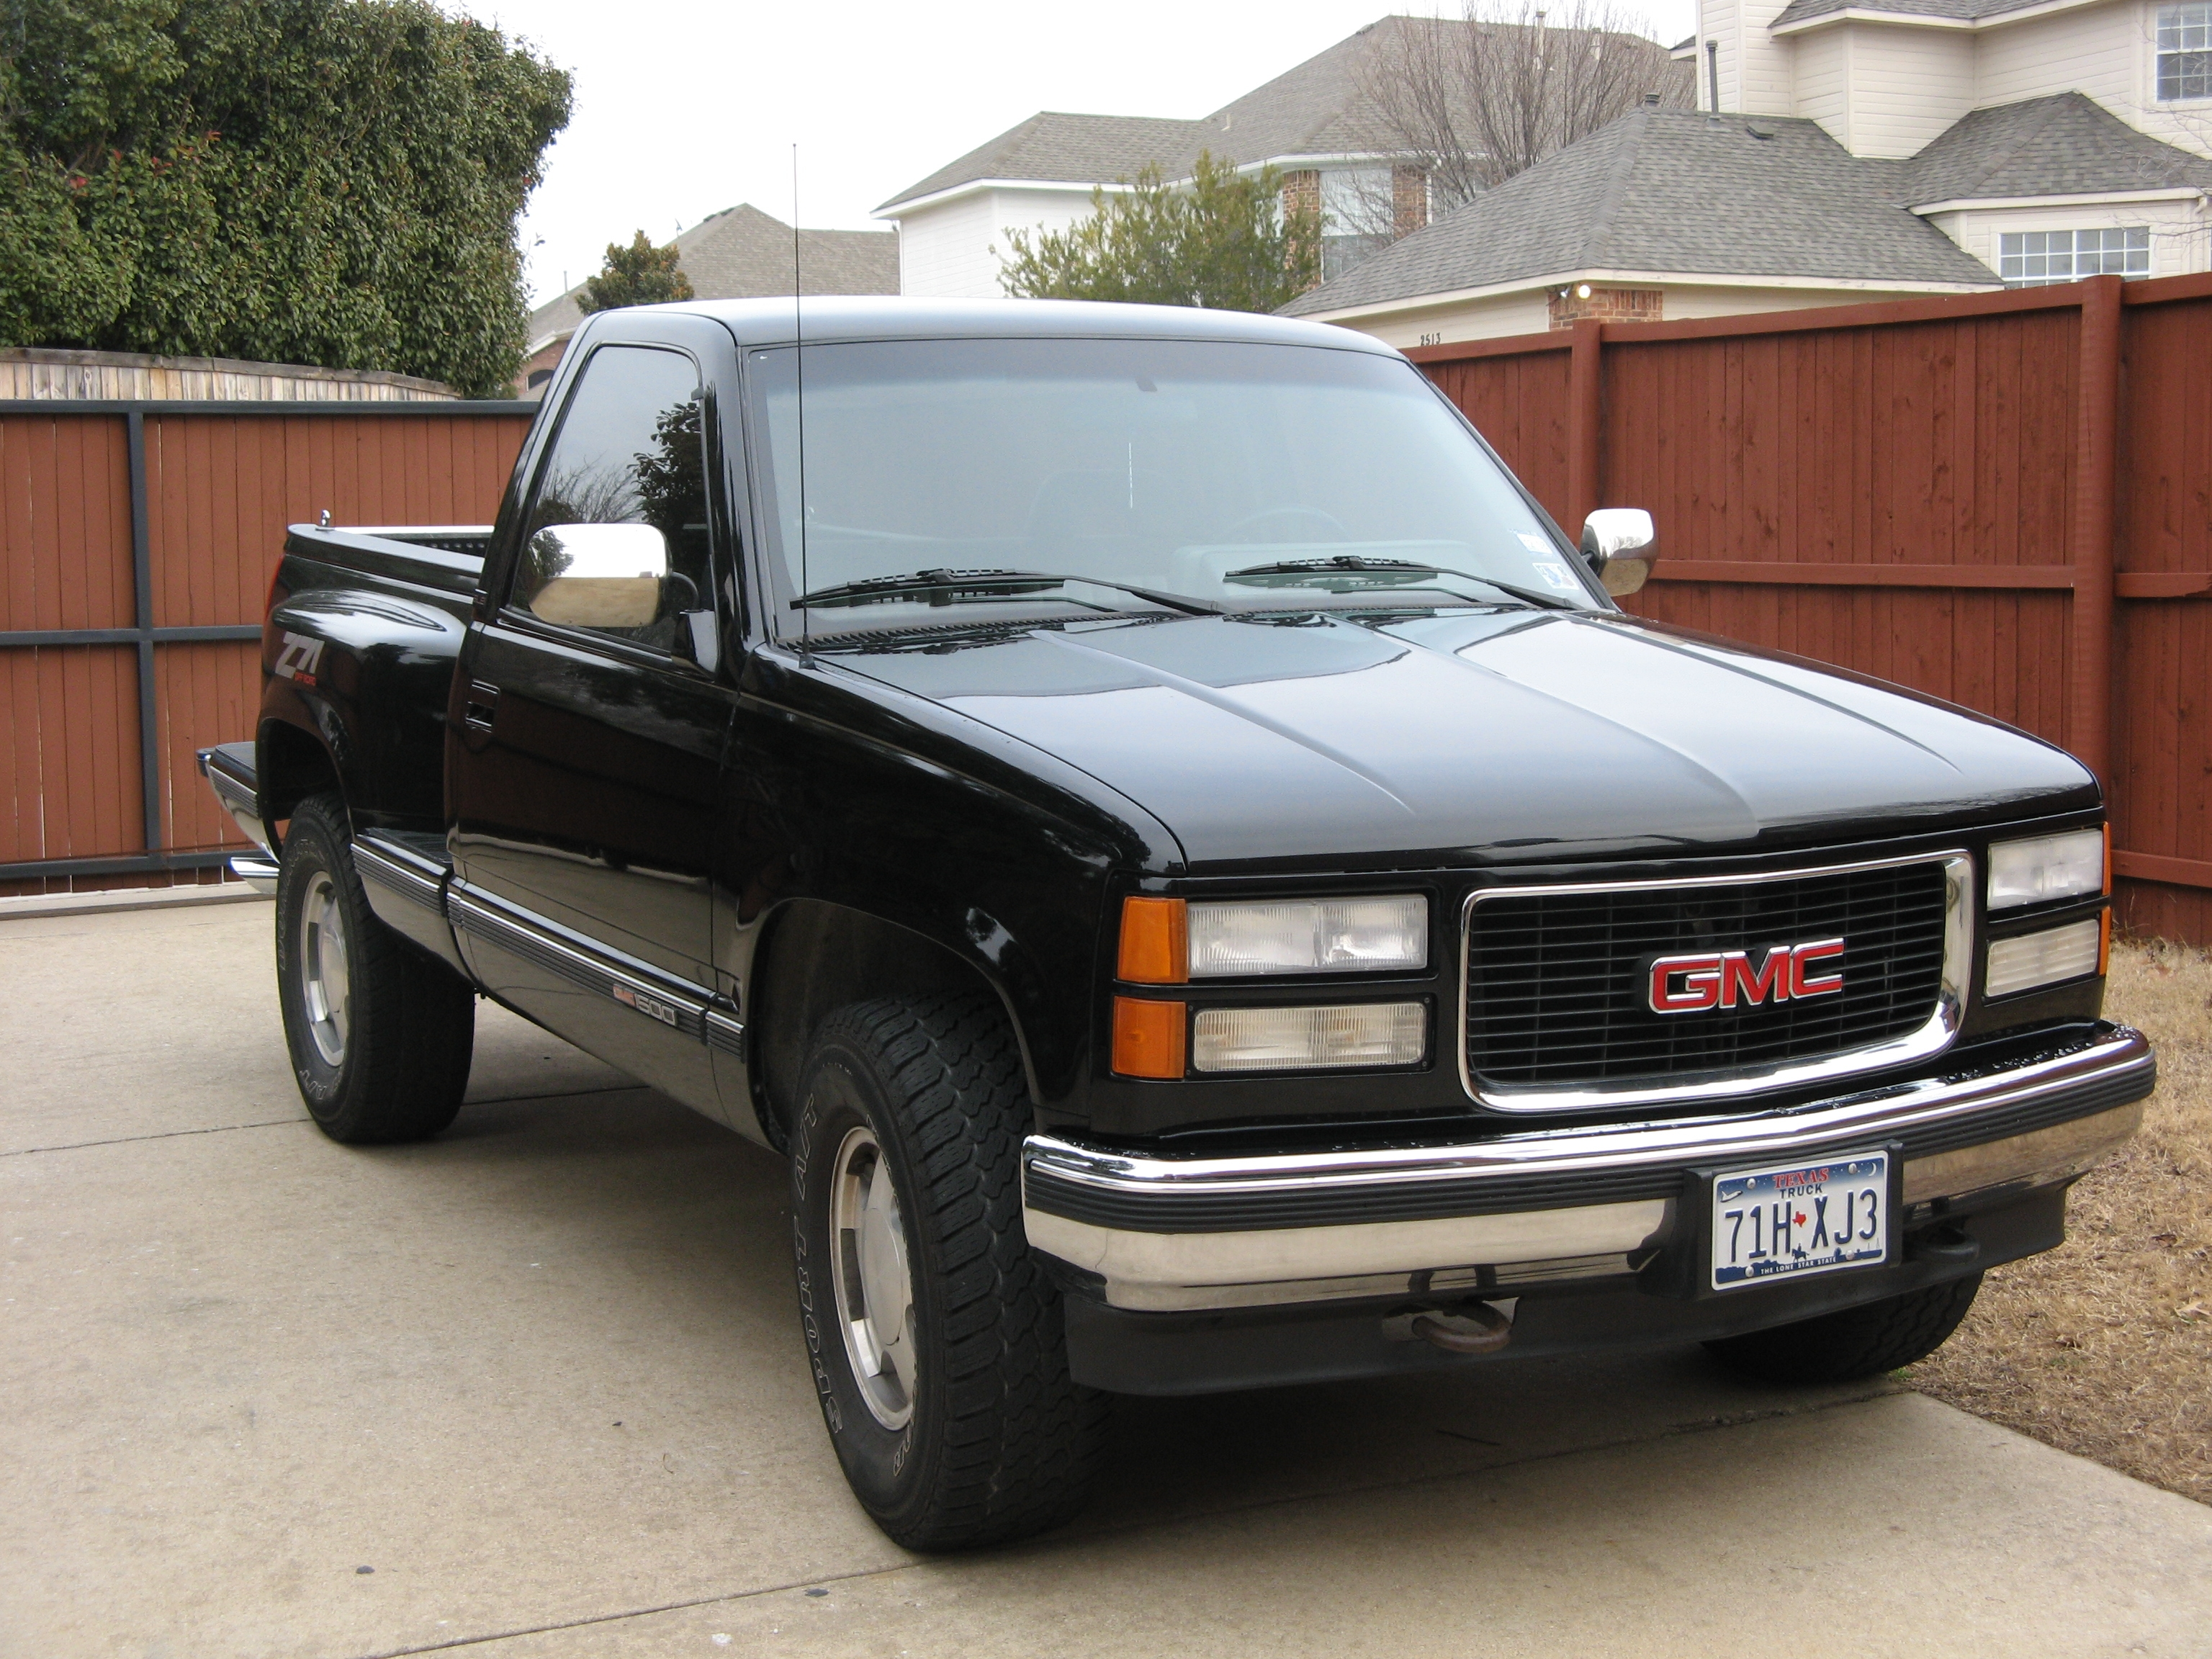 hawkstud27 1994 gmc sierra 1500 regular cab specs photos. Black Bedroom Furniture Sets. Home Design Ideas